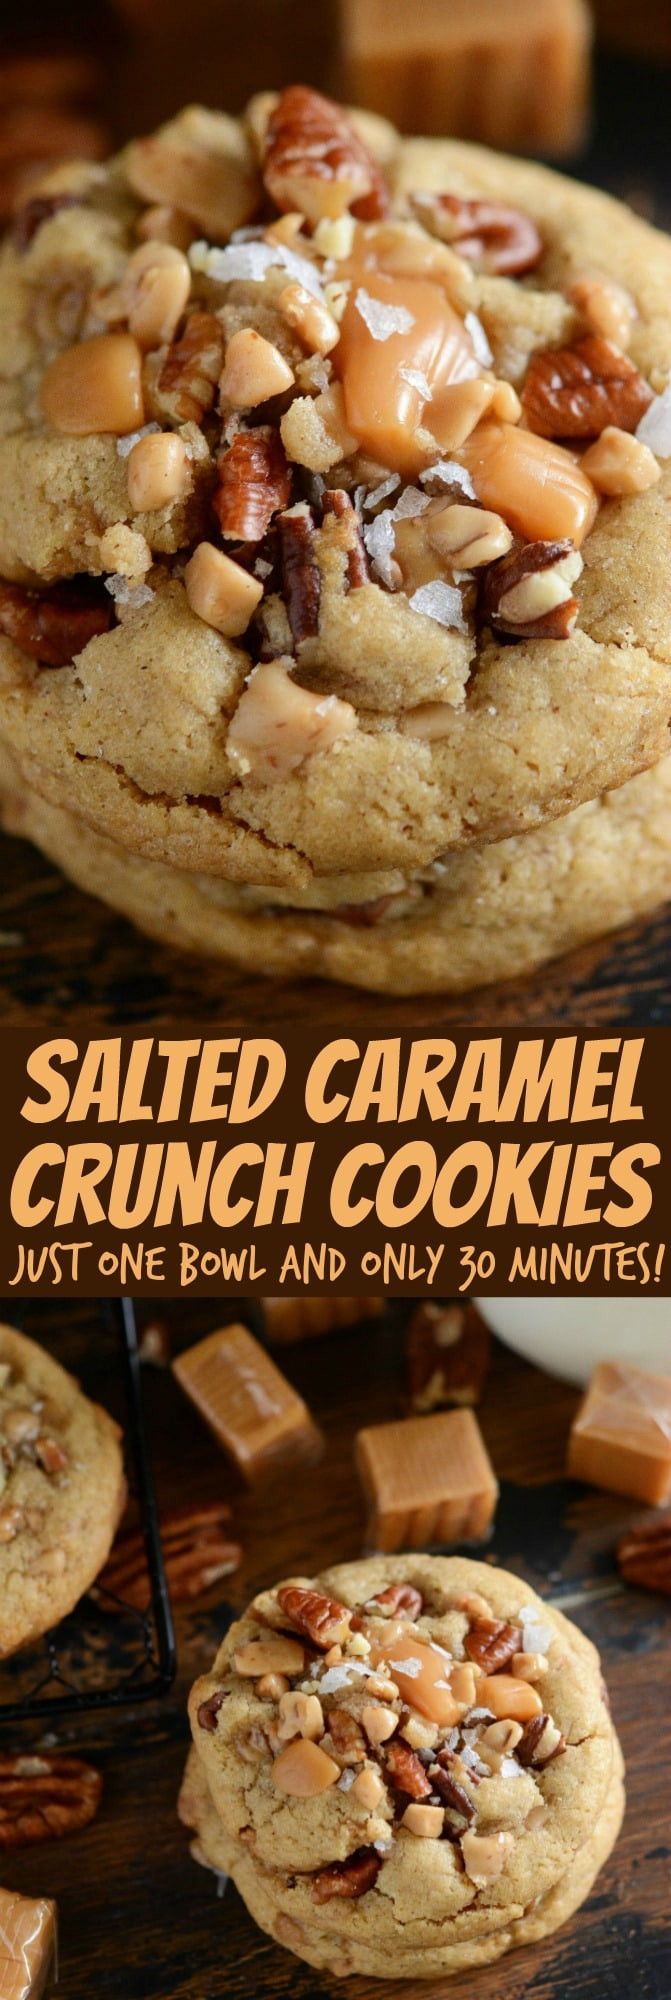 Caramel Christmas Cookies  Salted Caramel Crunch Cookies